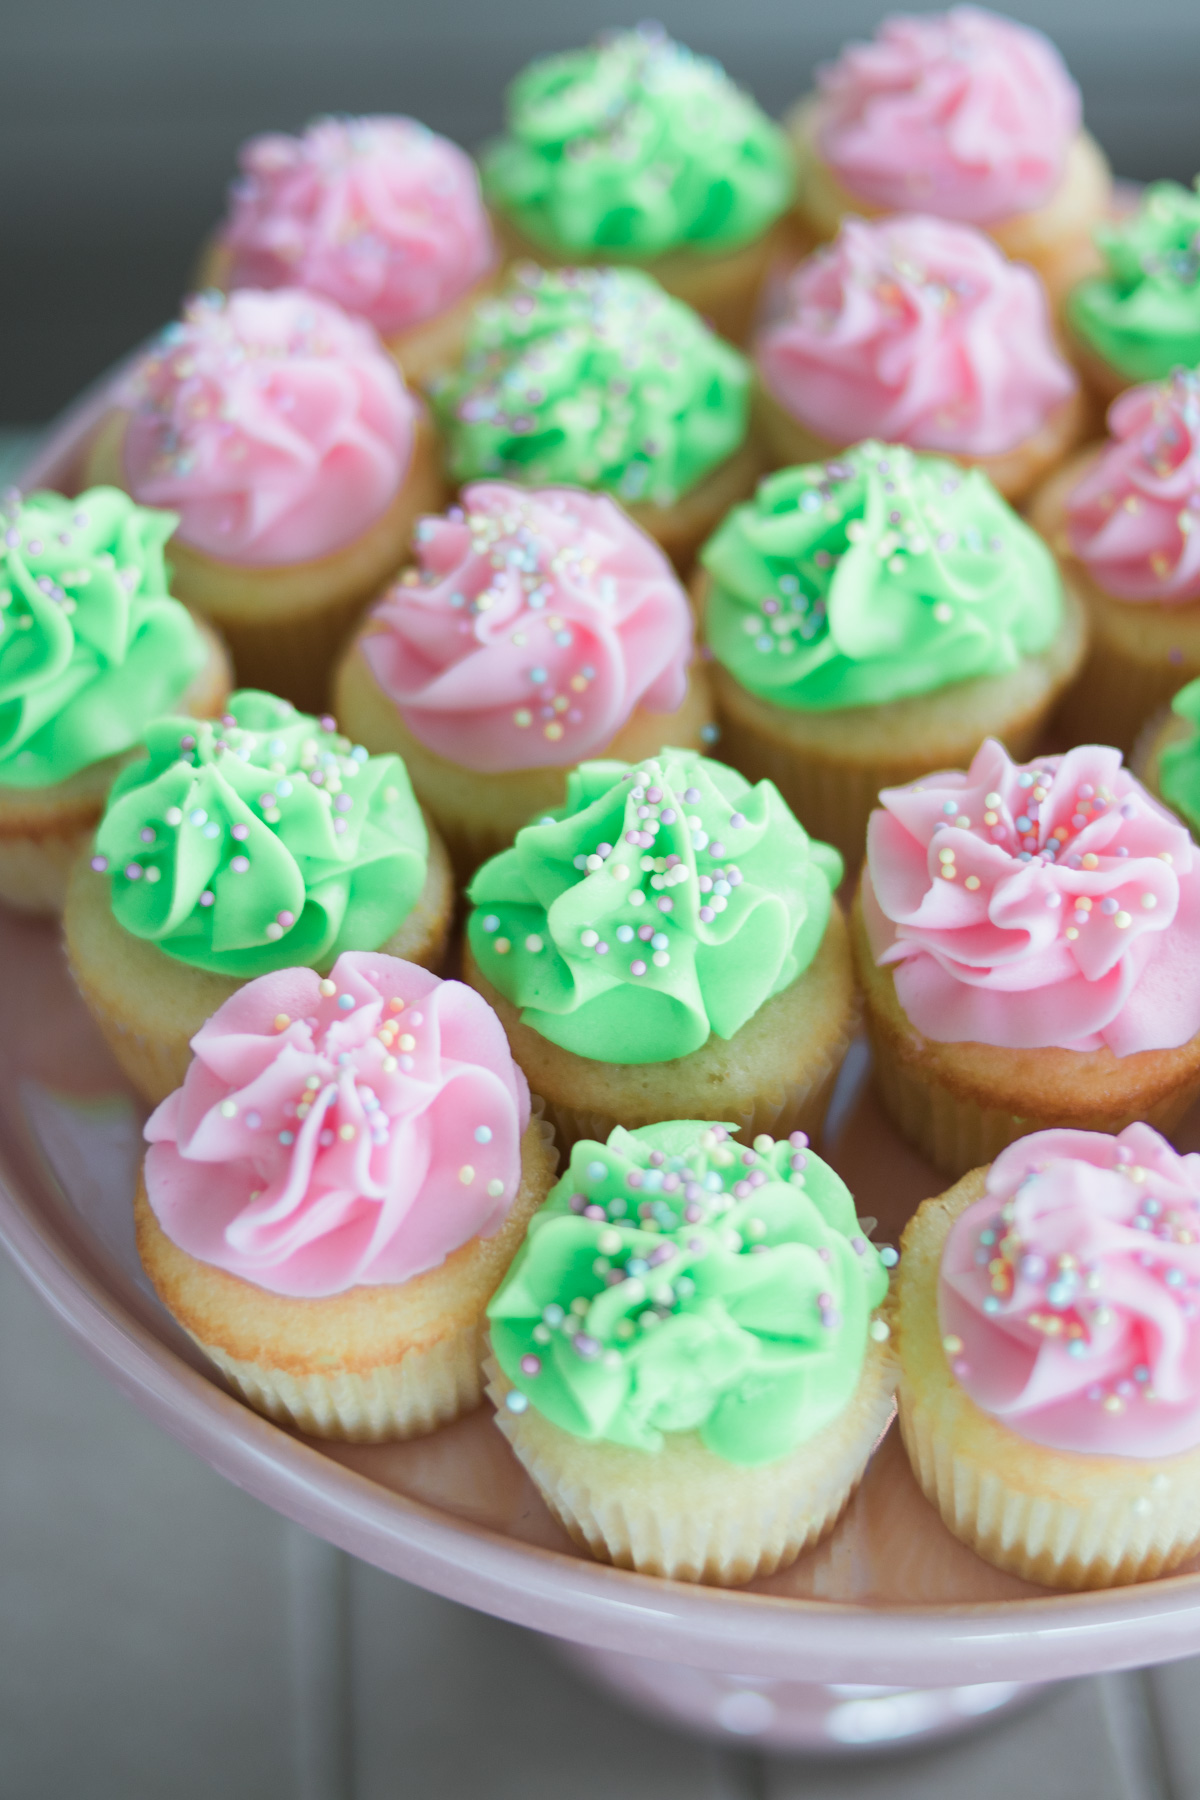 green and pink mini cupcakes with sprinkles on display